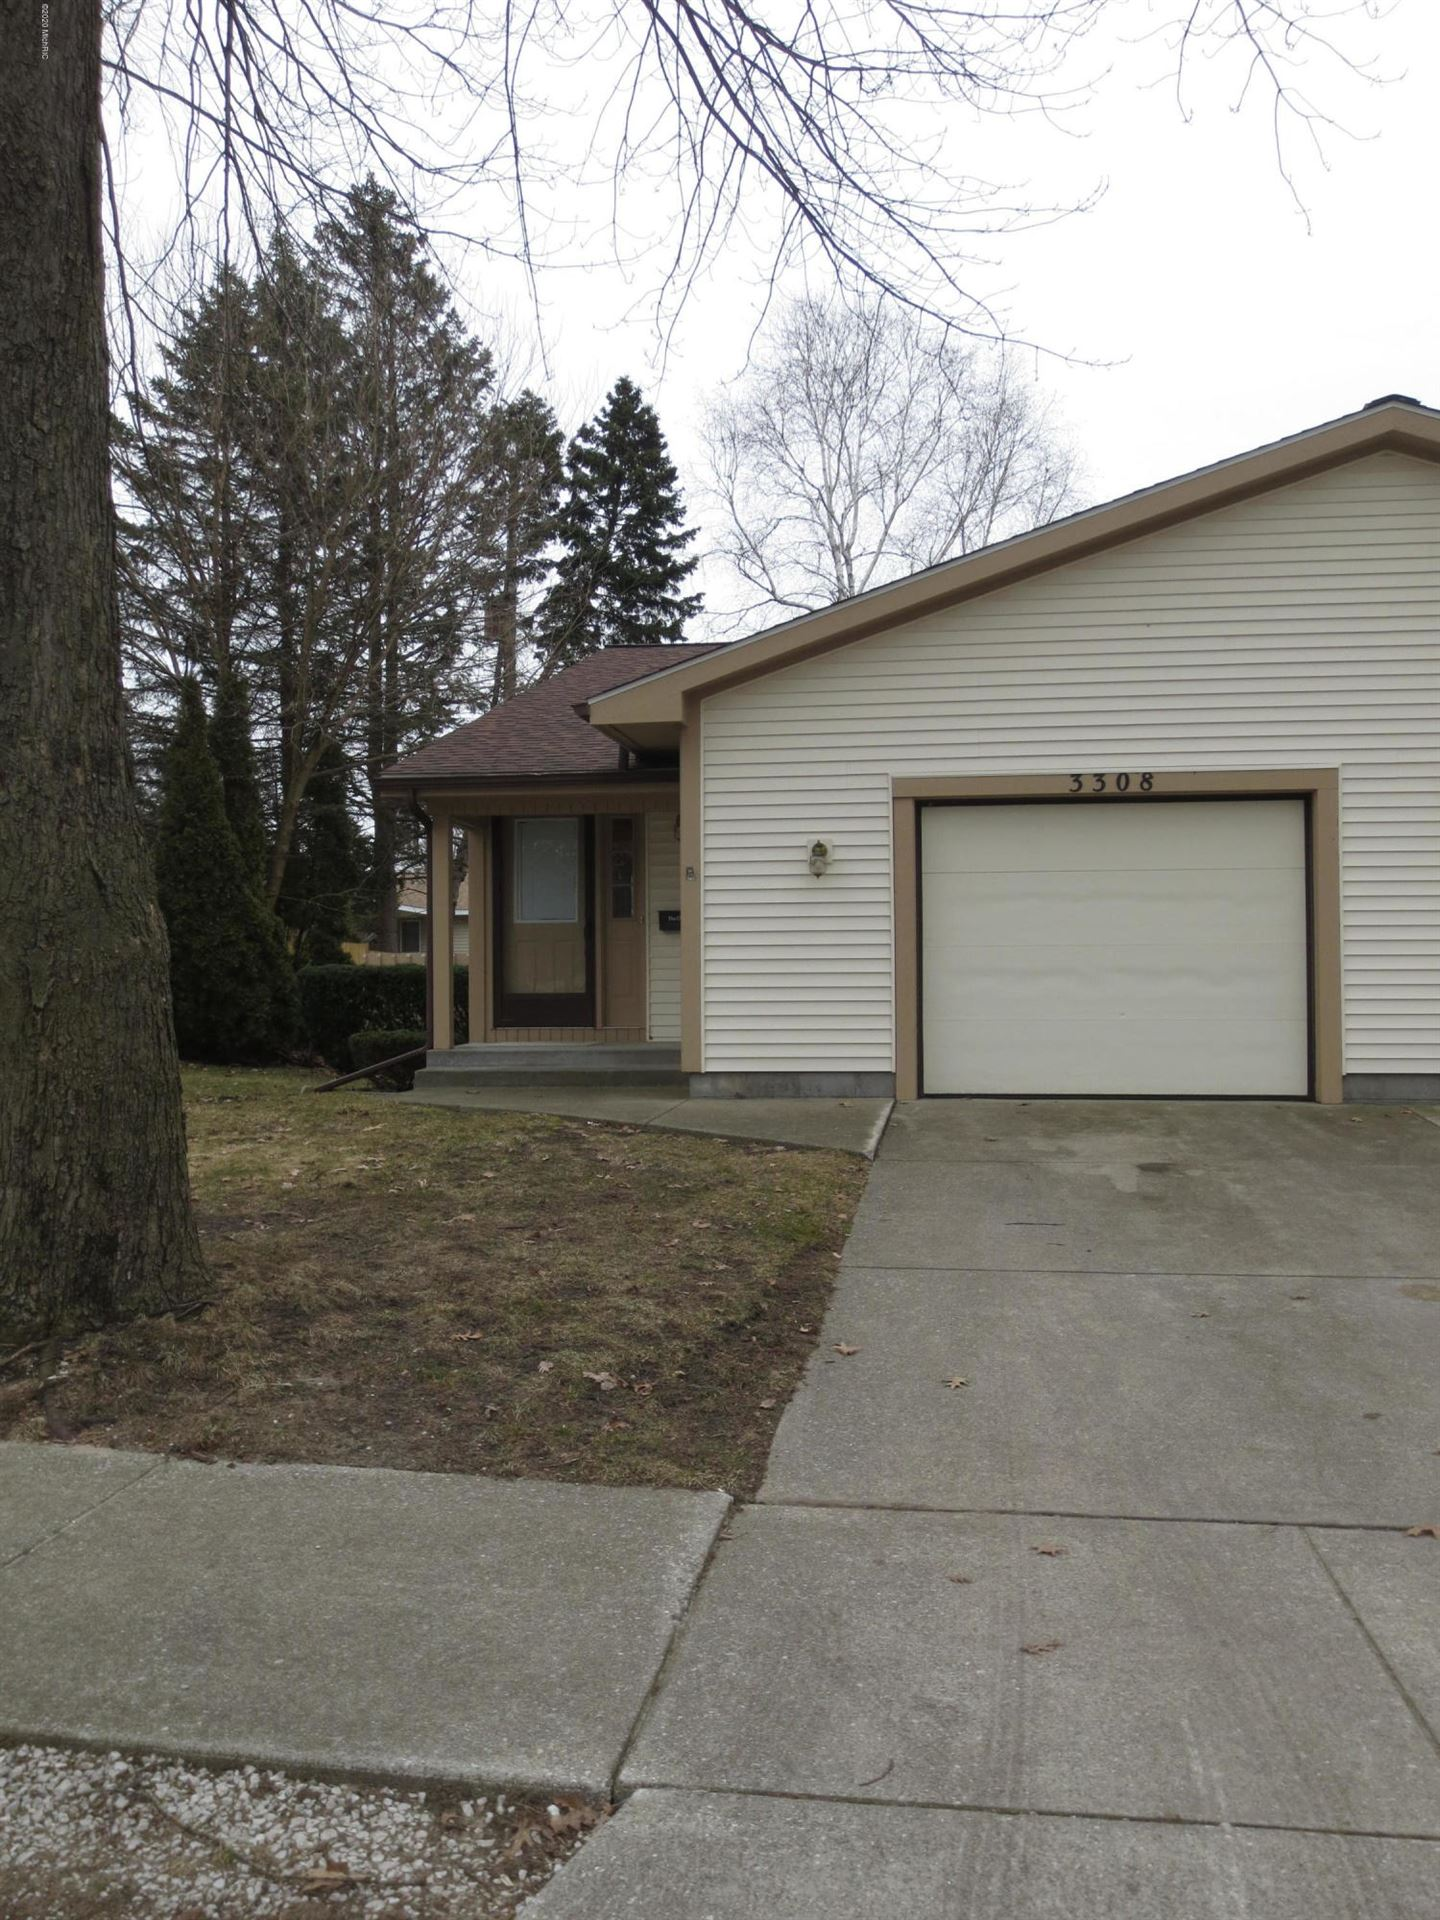 3308 Germaine Road #25, Muskegon, MI 49441 - #: 20010744